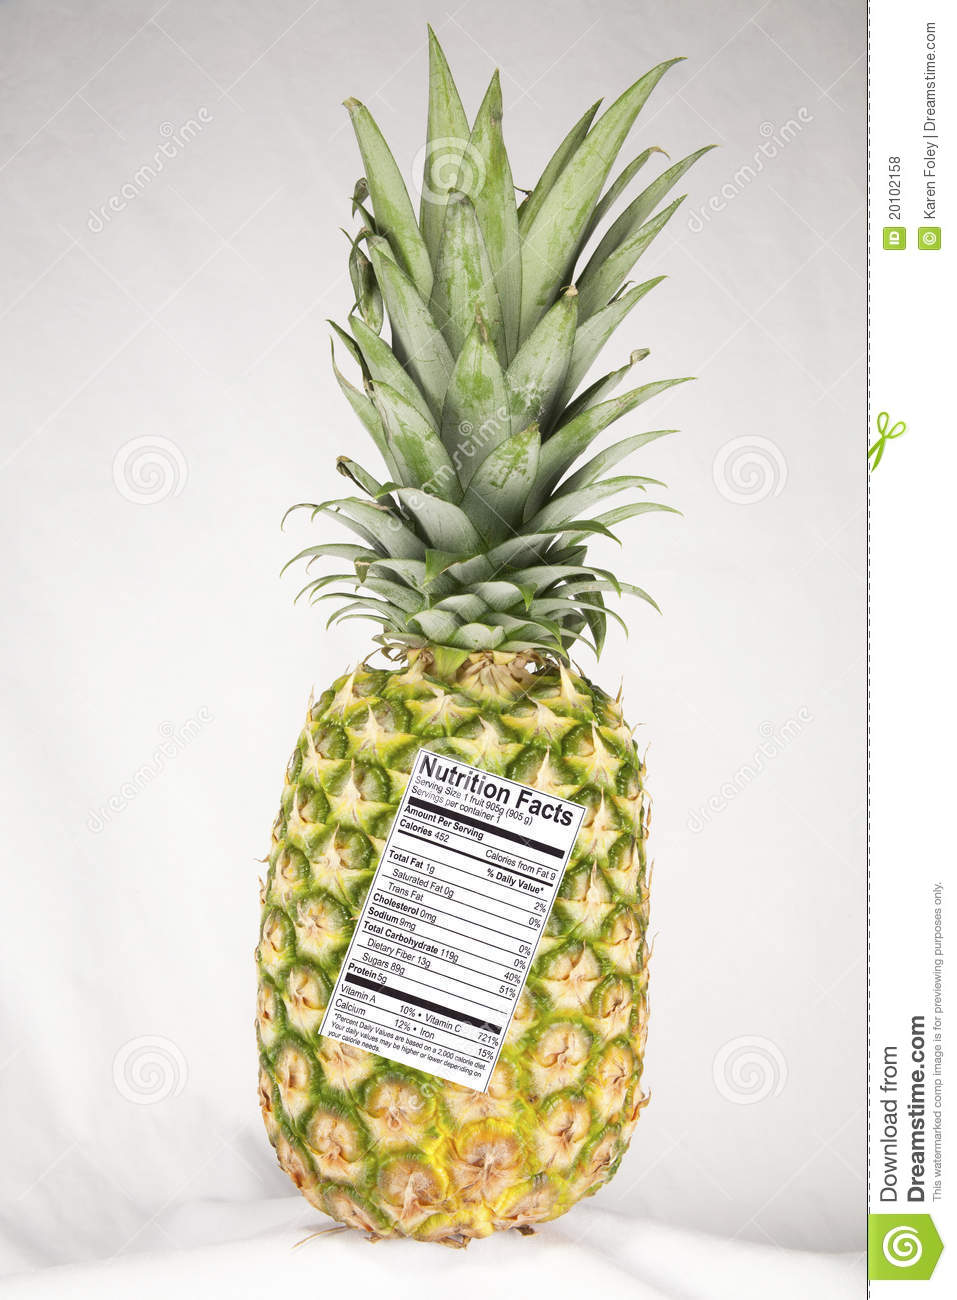 pineapple with nutrition label stock photo - image of allowance